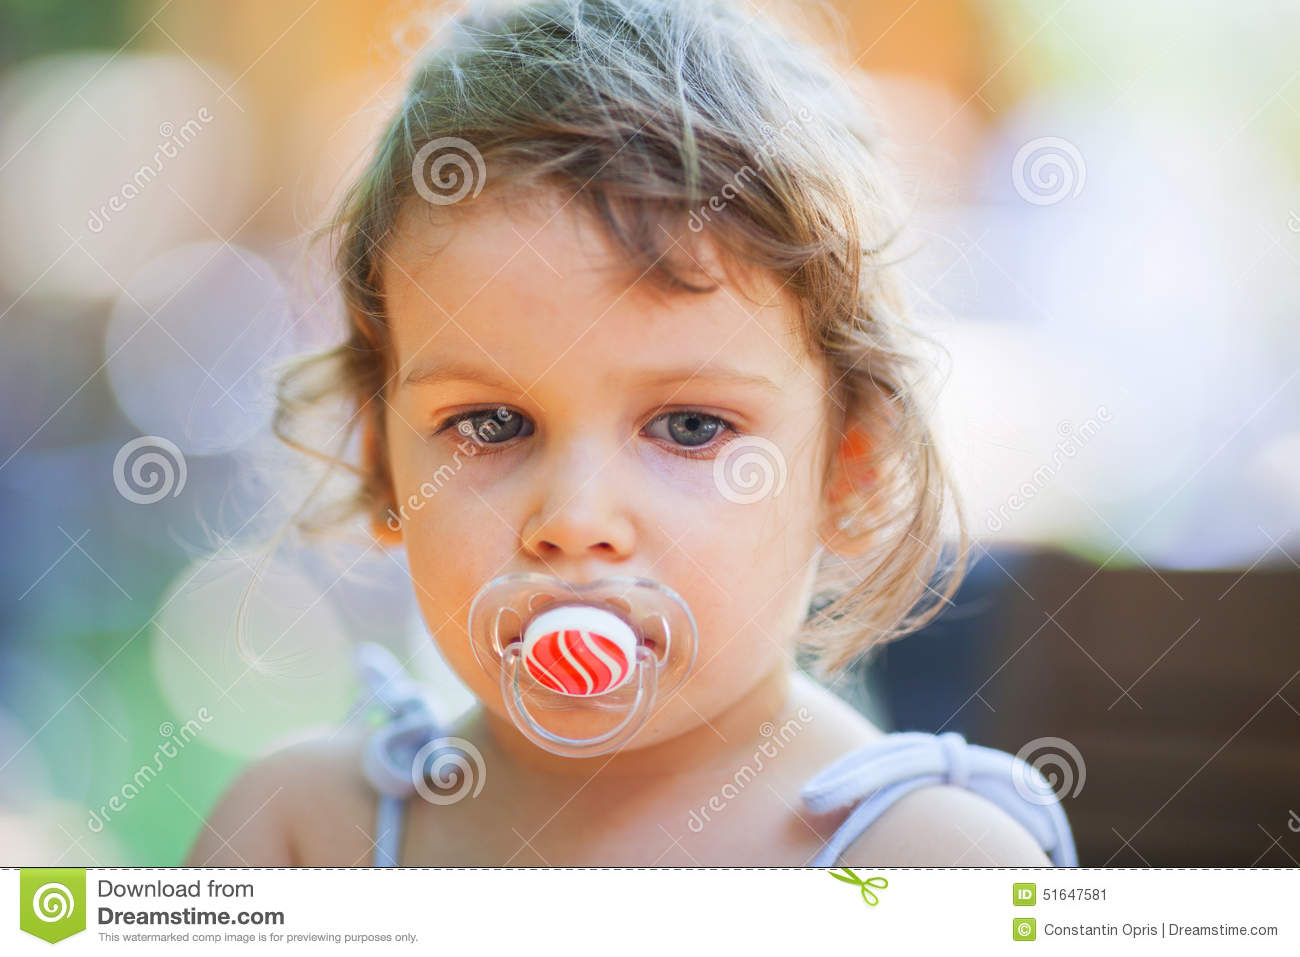 Naked women with pacifier in mouth